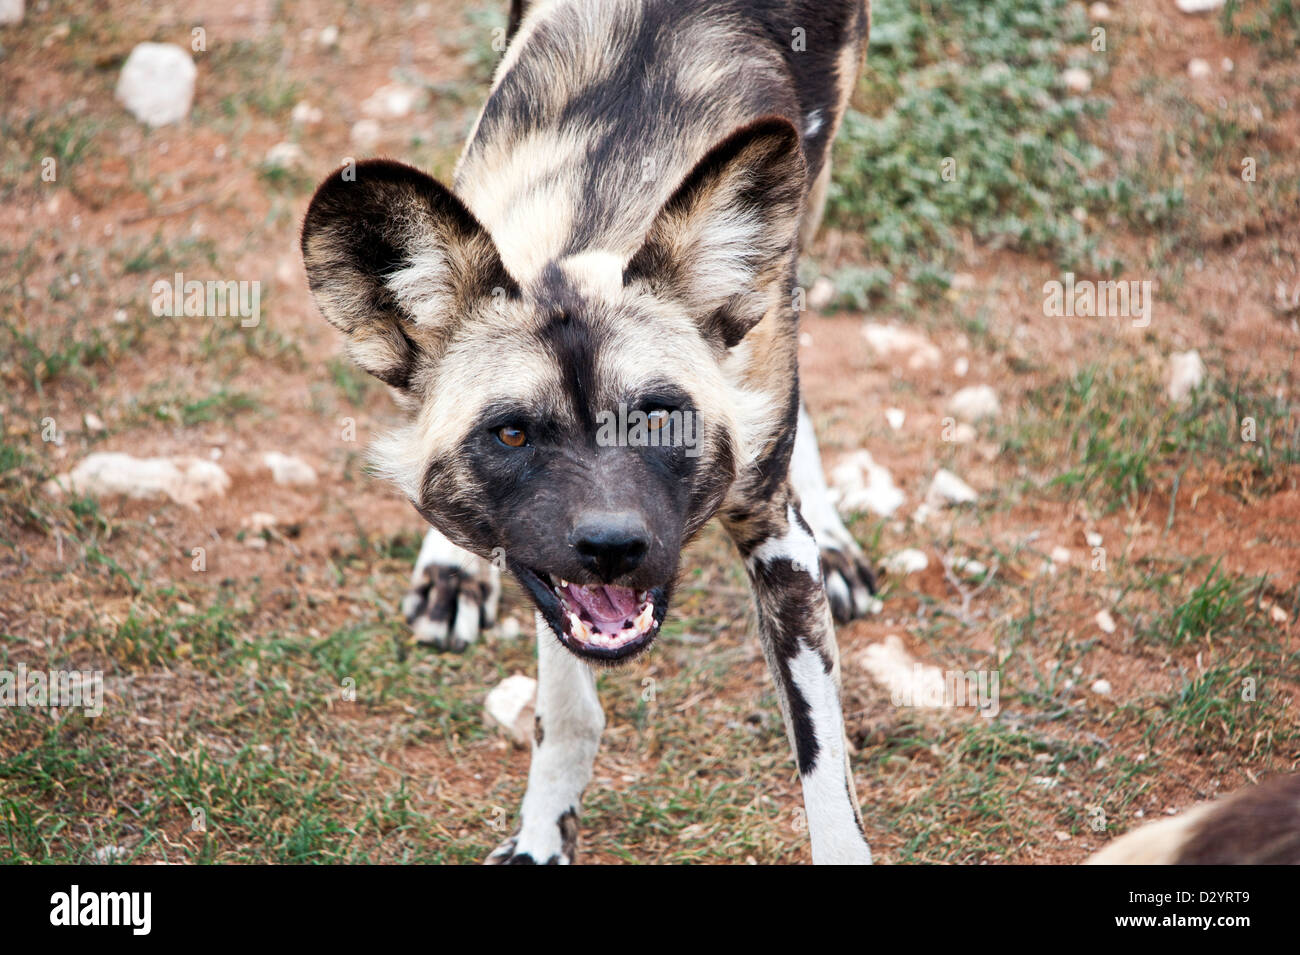 A wild African dog snarls towards the camera. - Stock Image